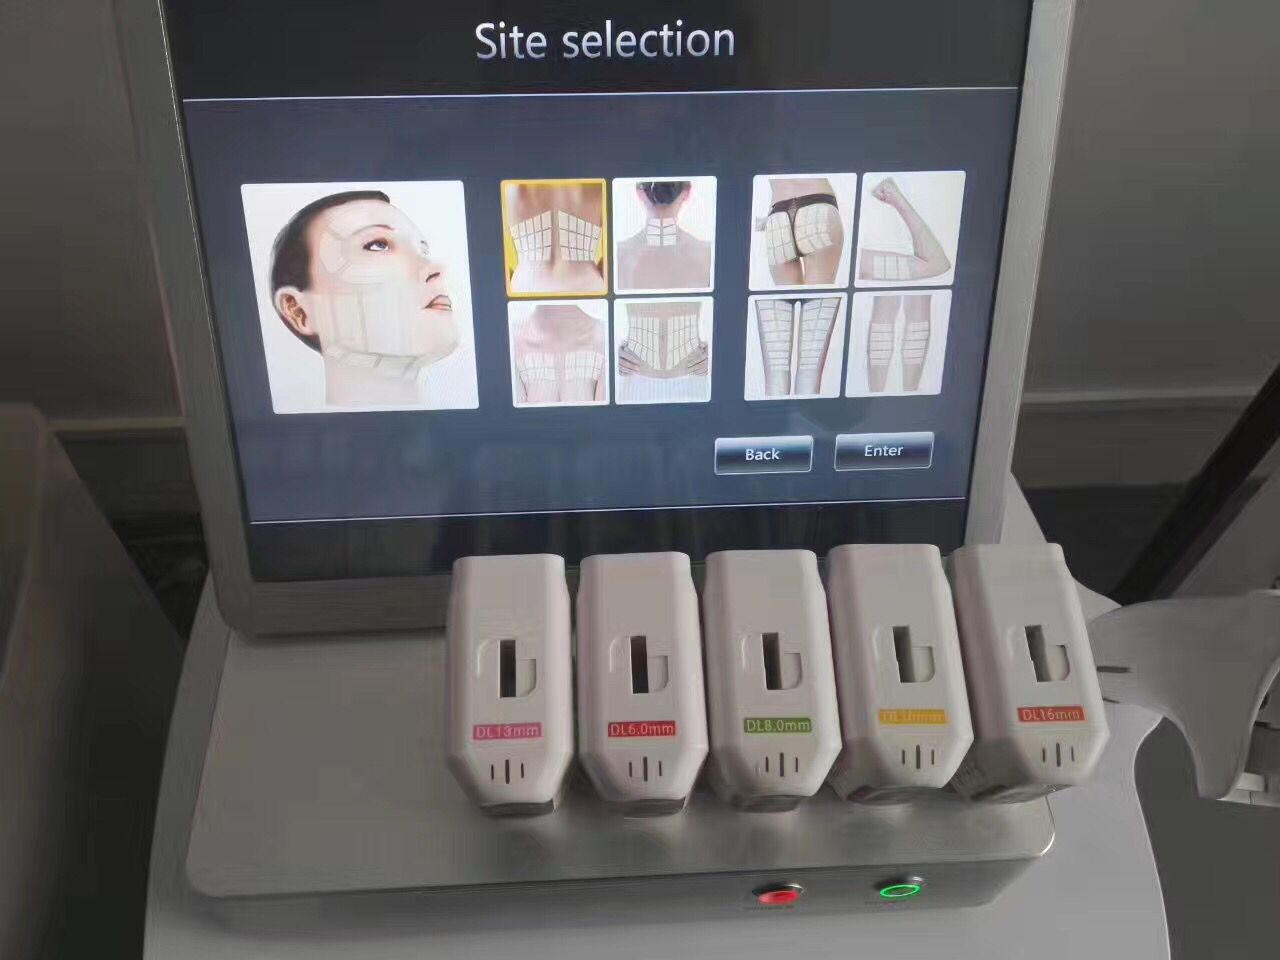 3D hifu facial and body slimming machine